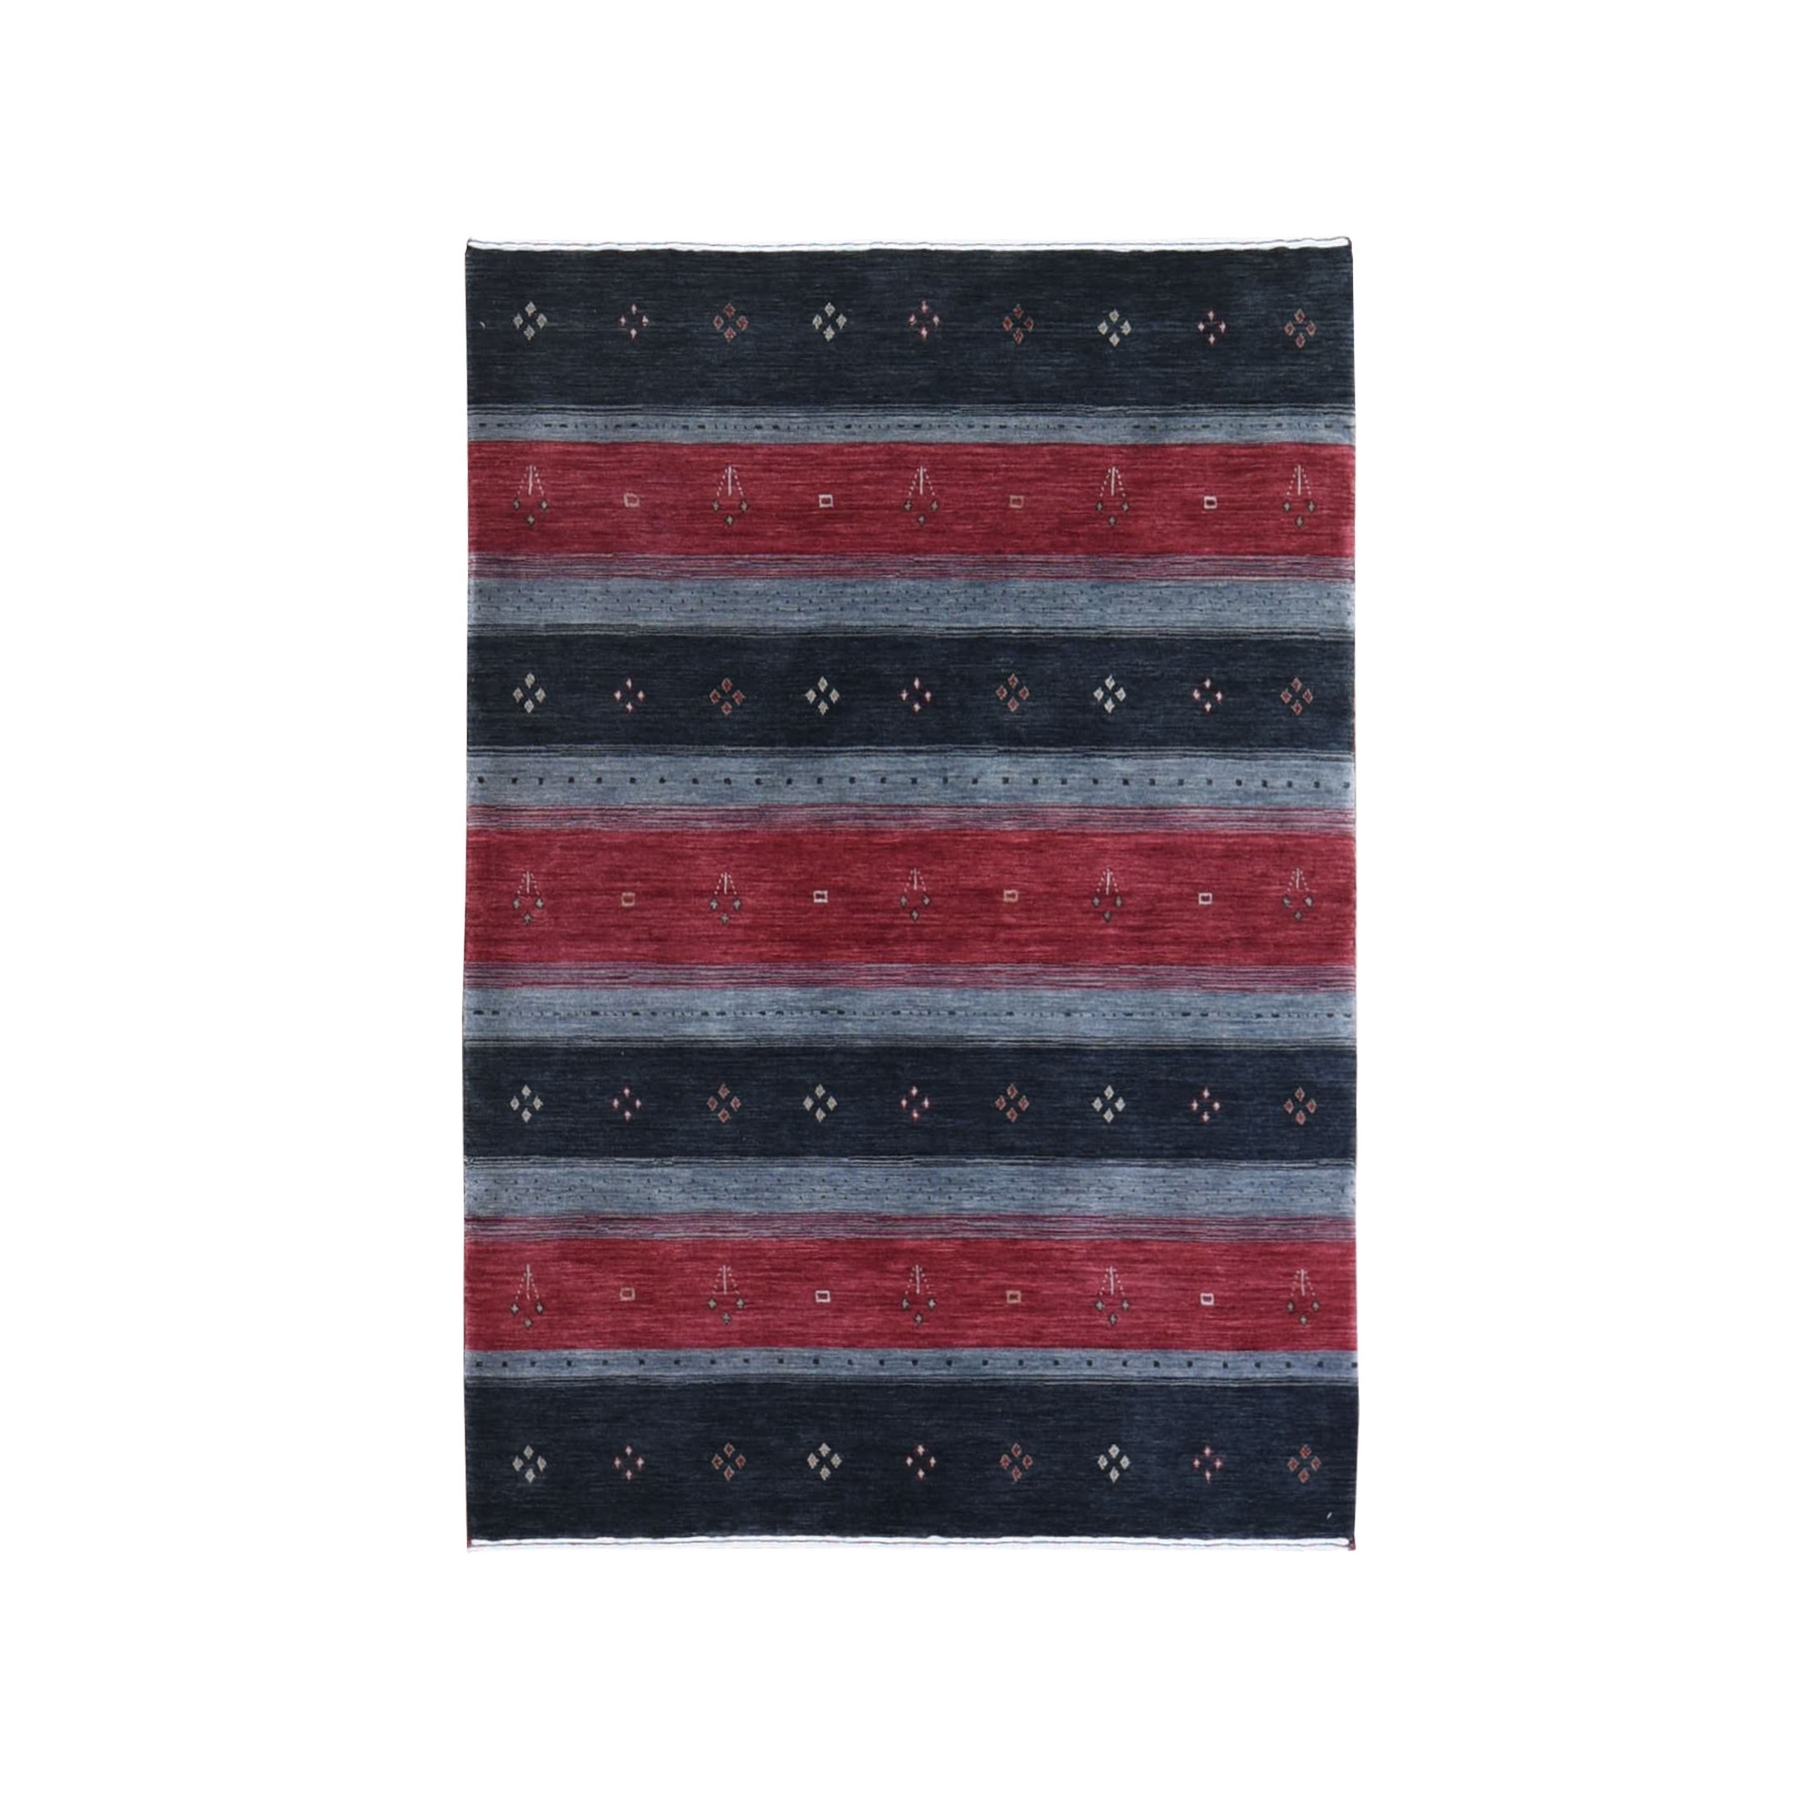 Mid Century Modern Collection Hand Loomed Black Rug No: 1132478